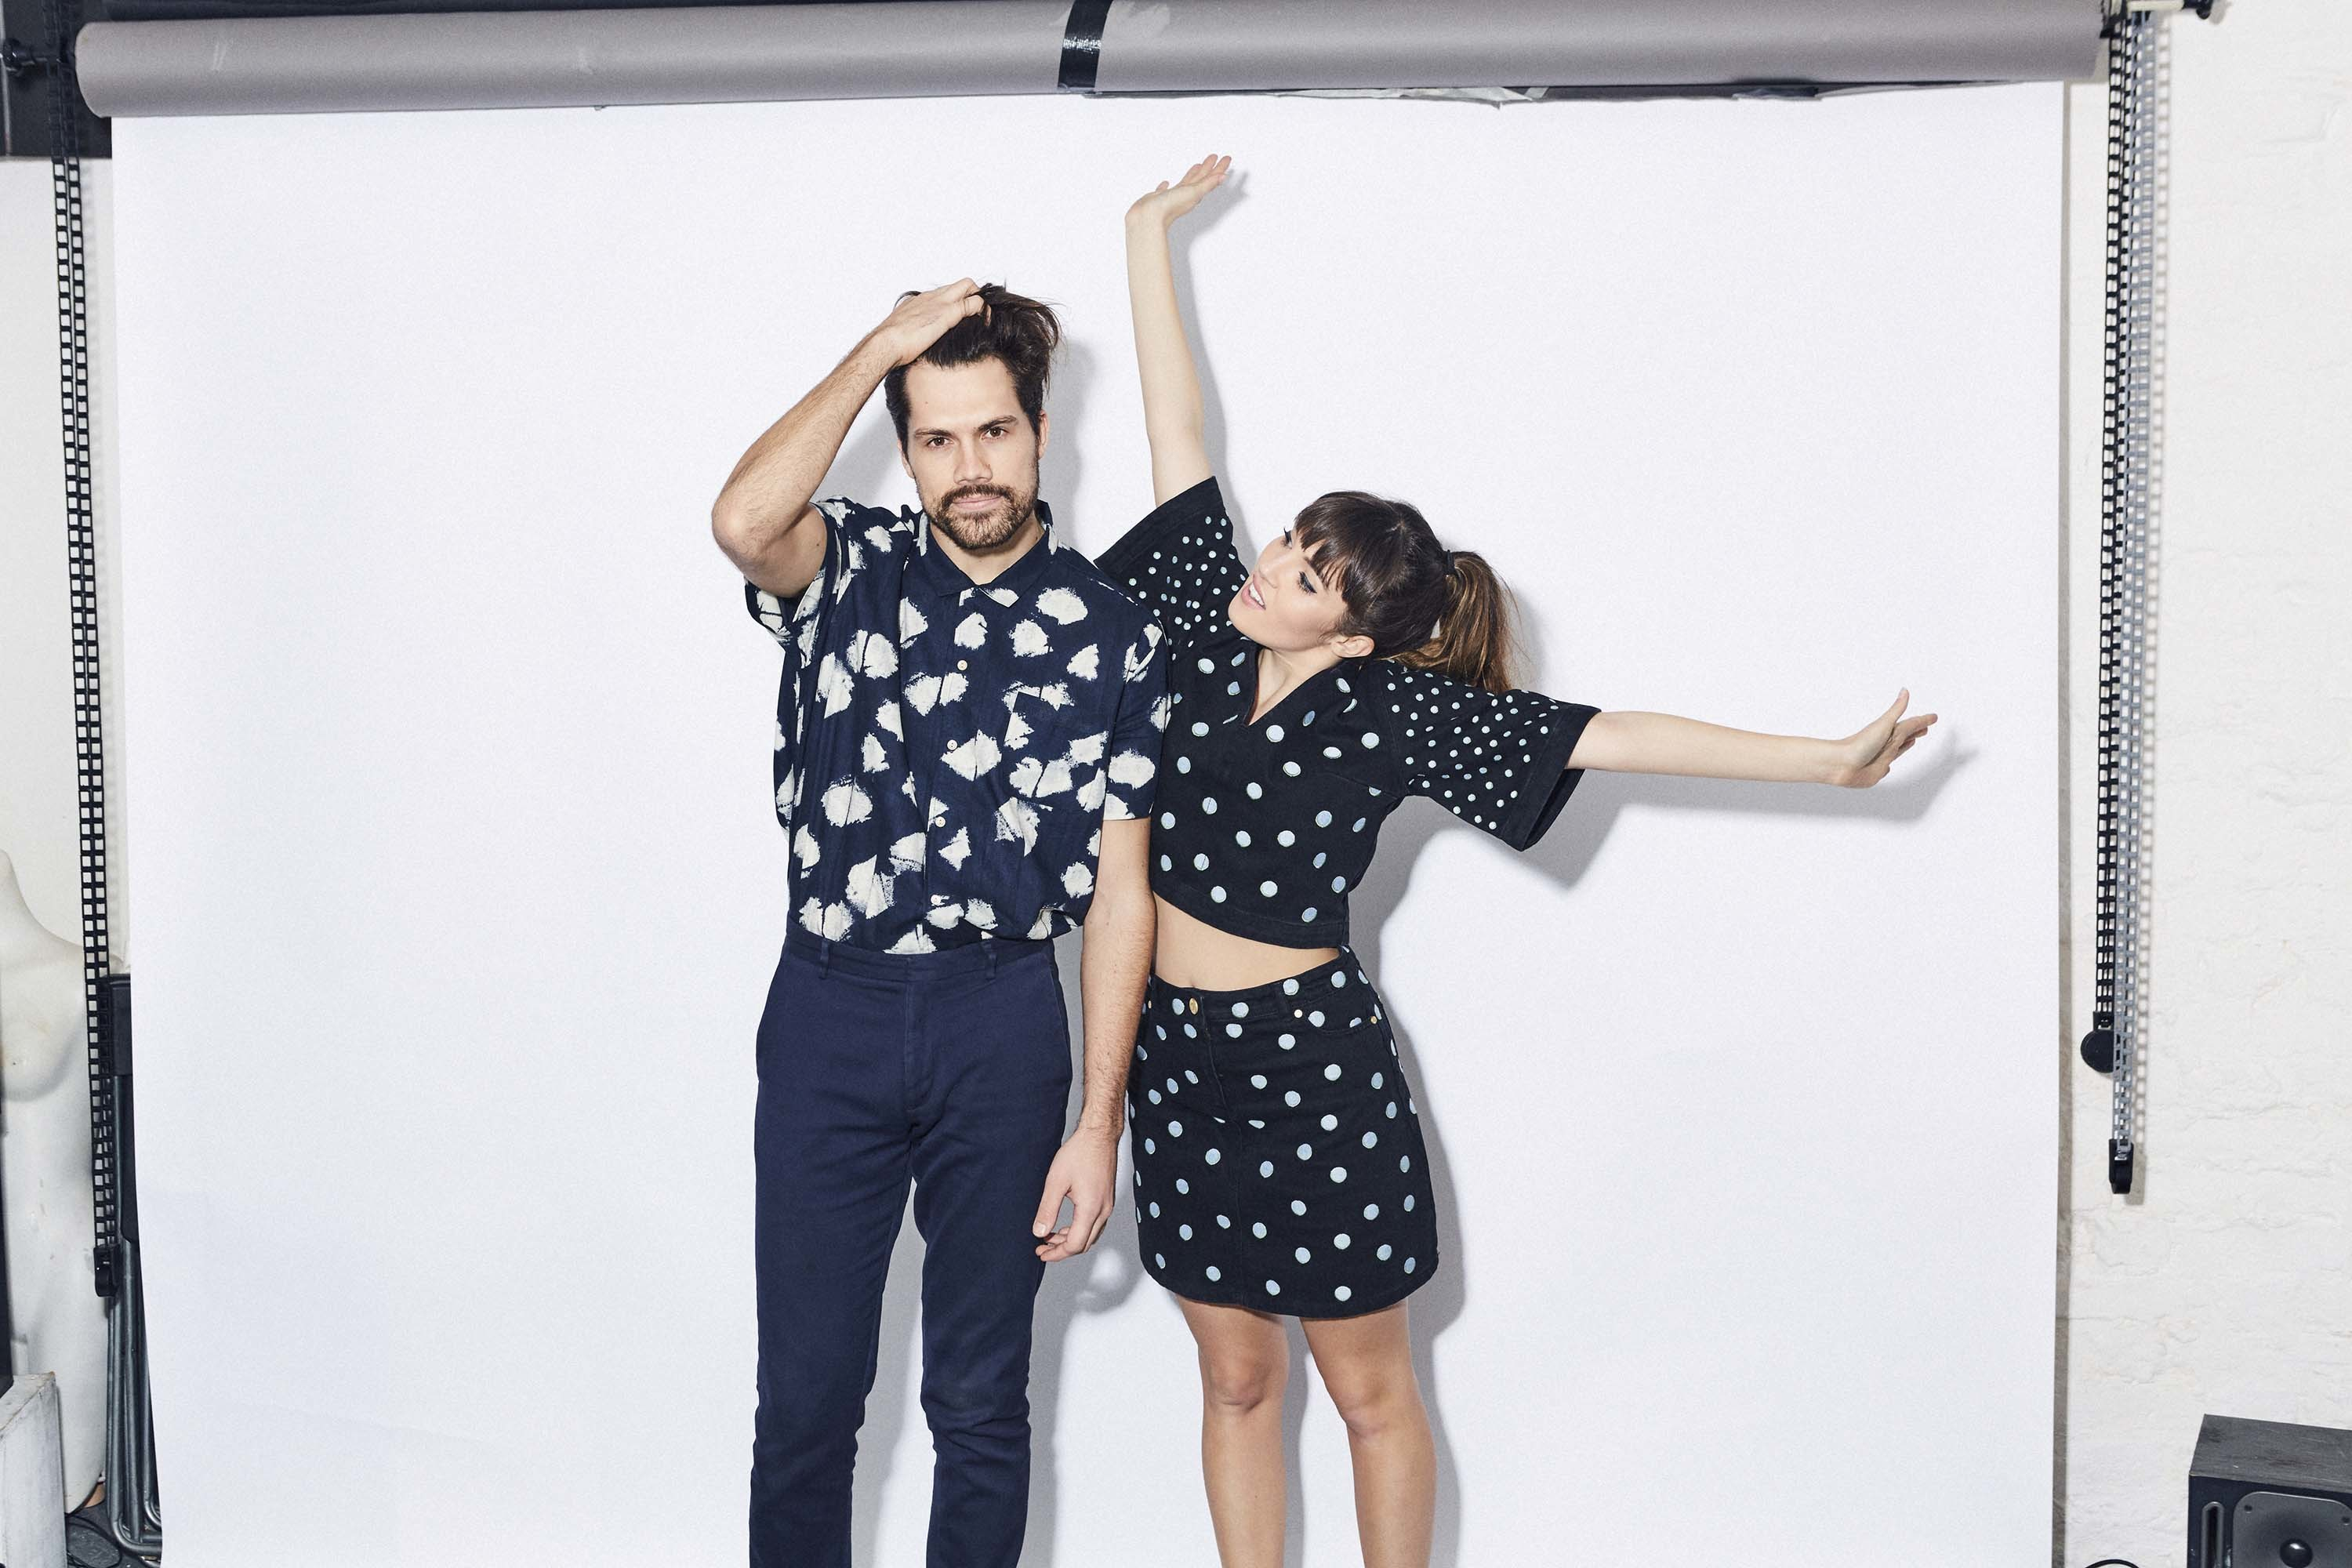 Oh Wonder's new album 'Ultralife' is out in June